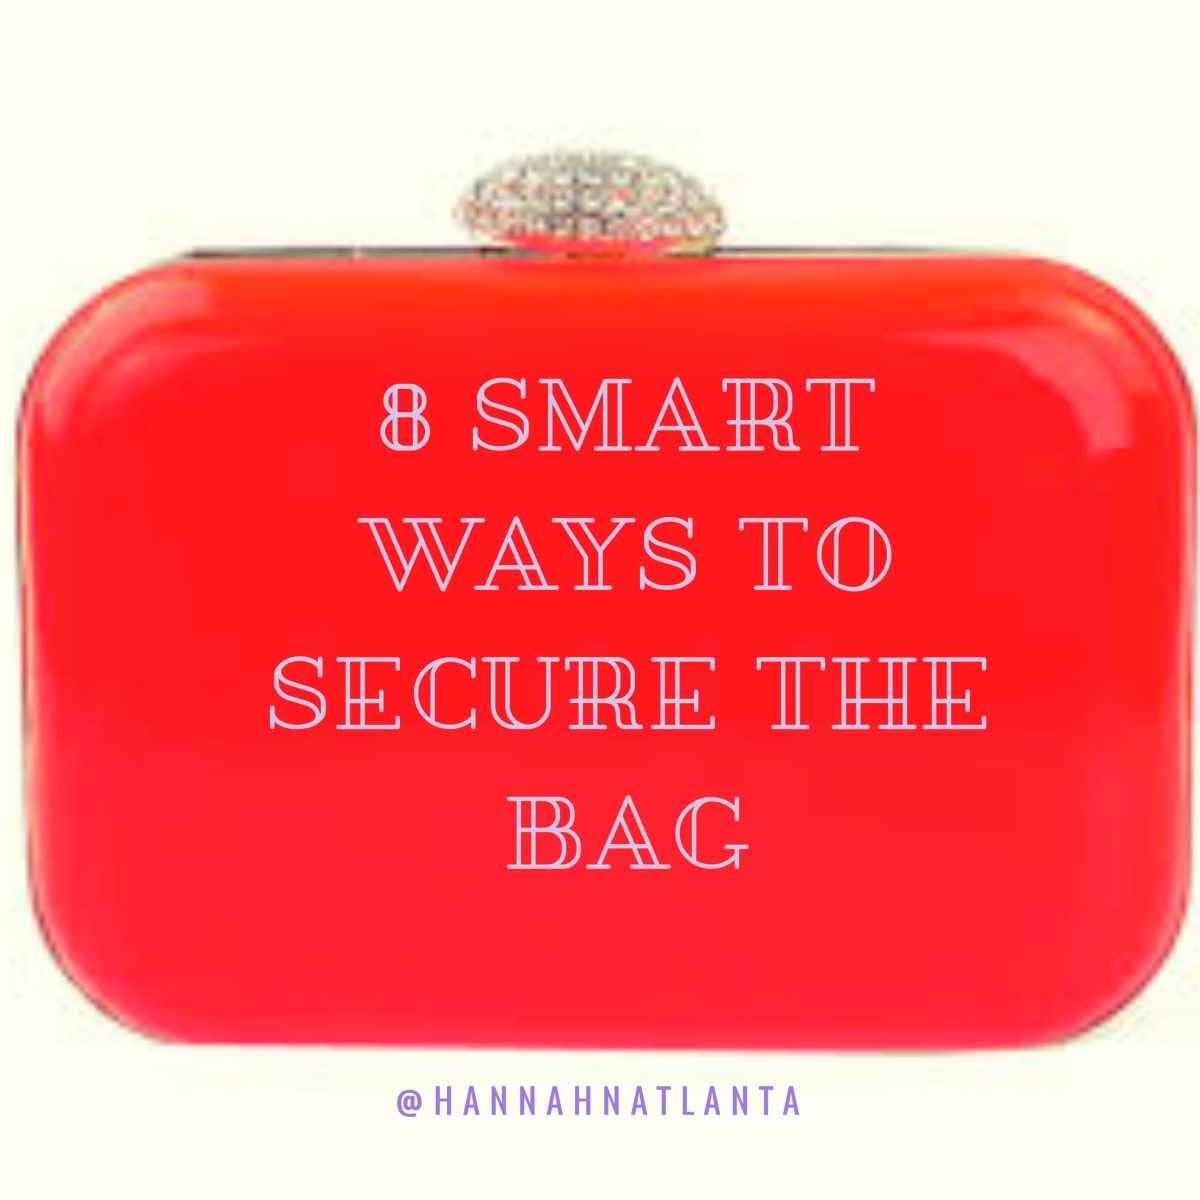 8 Smart Ways To Secure TheBag